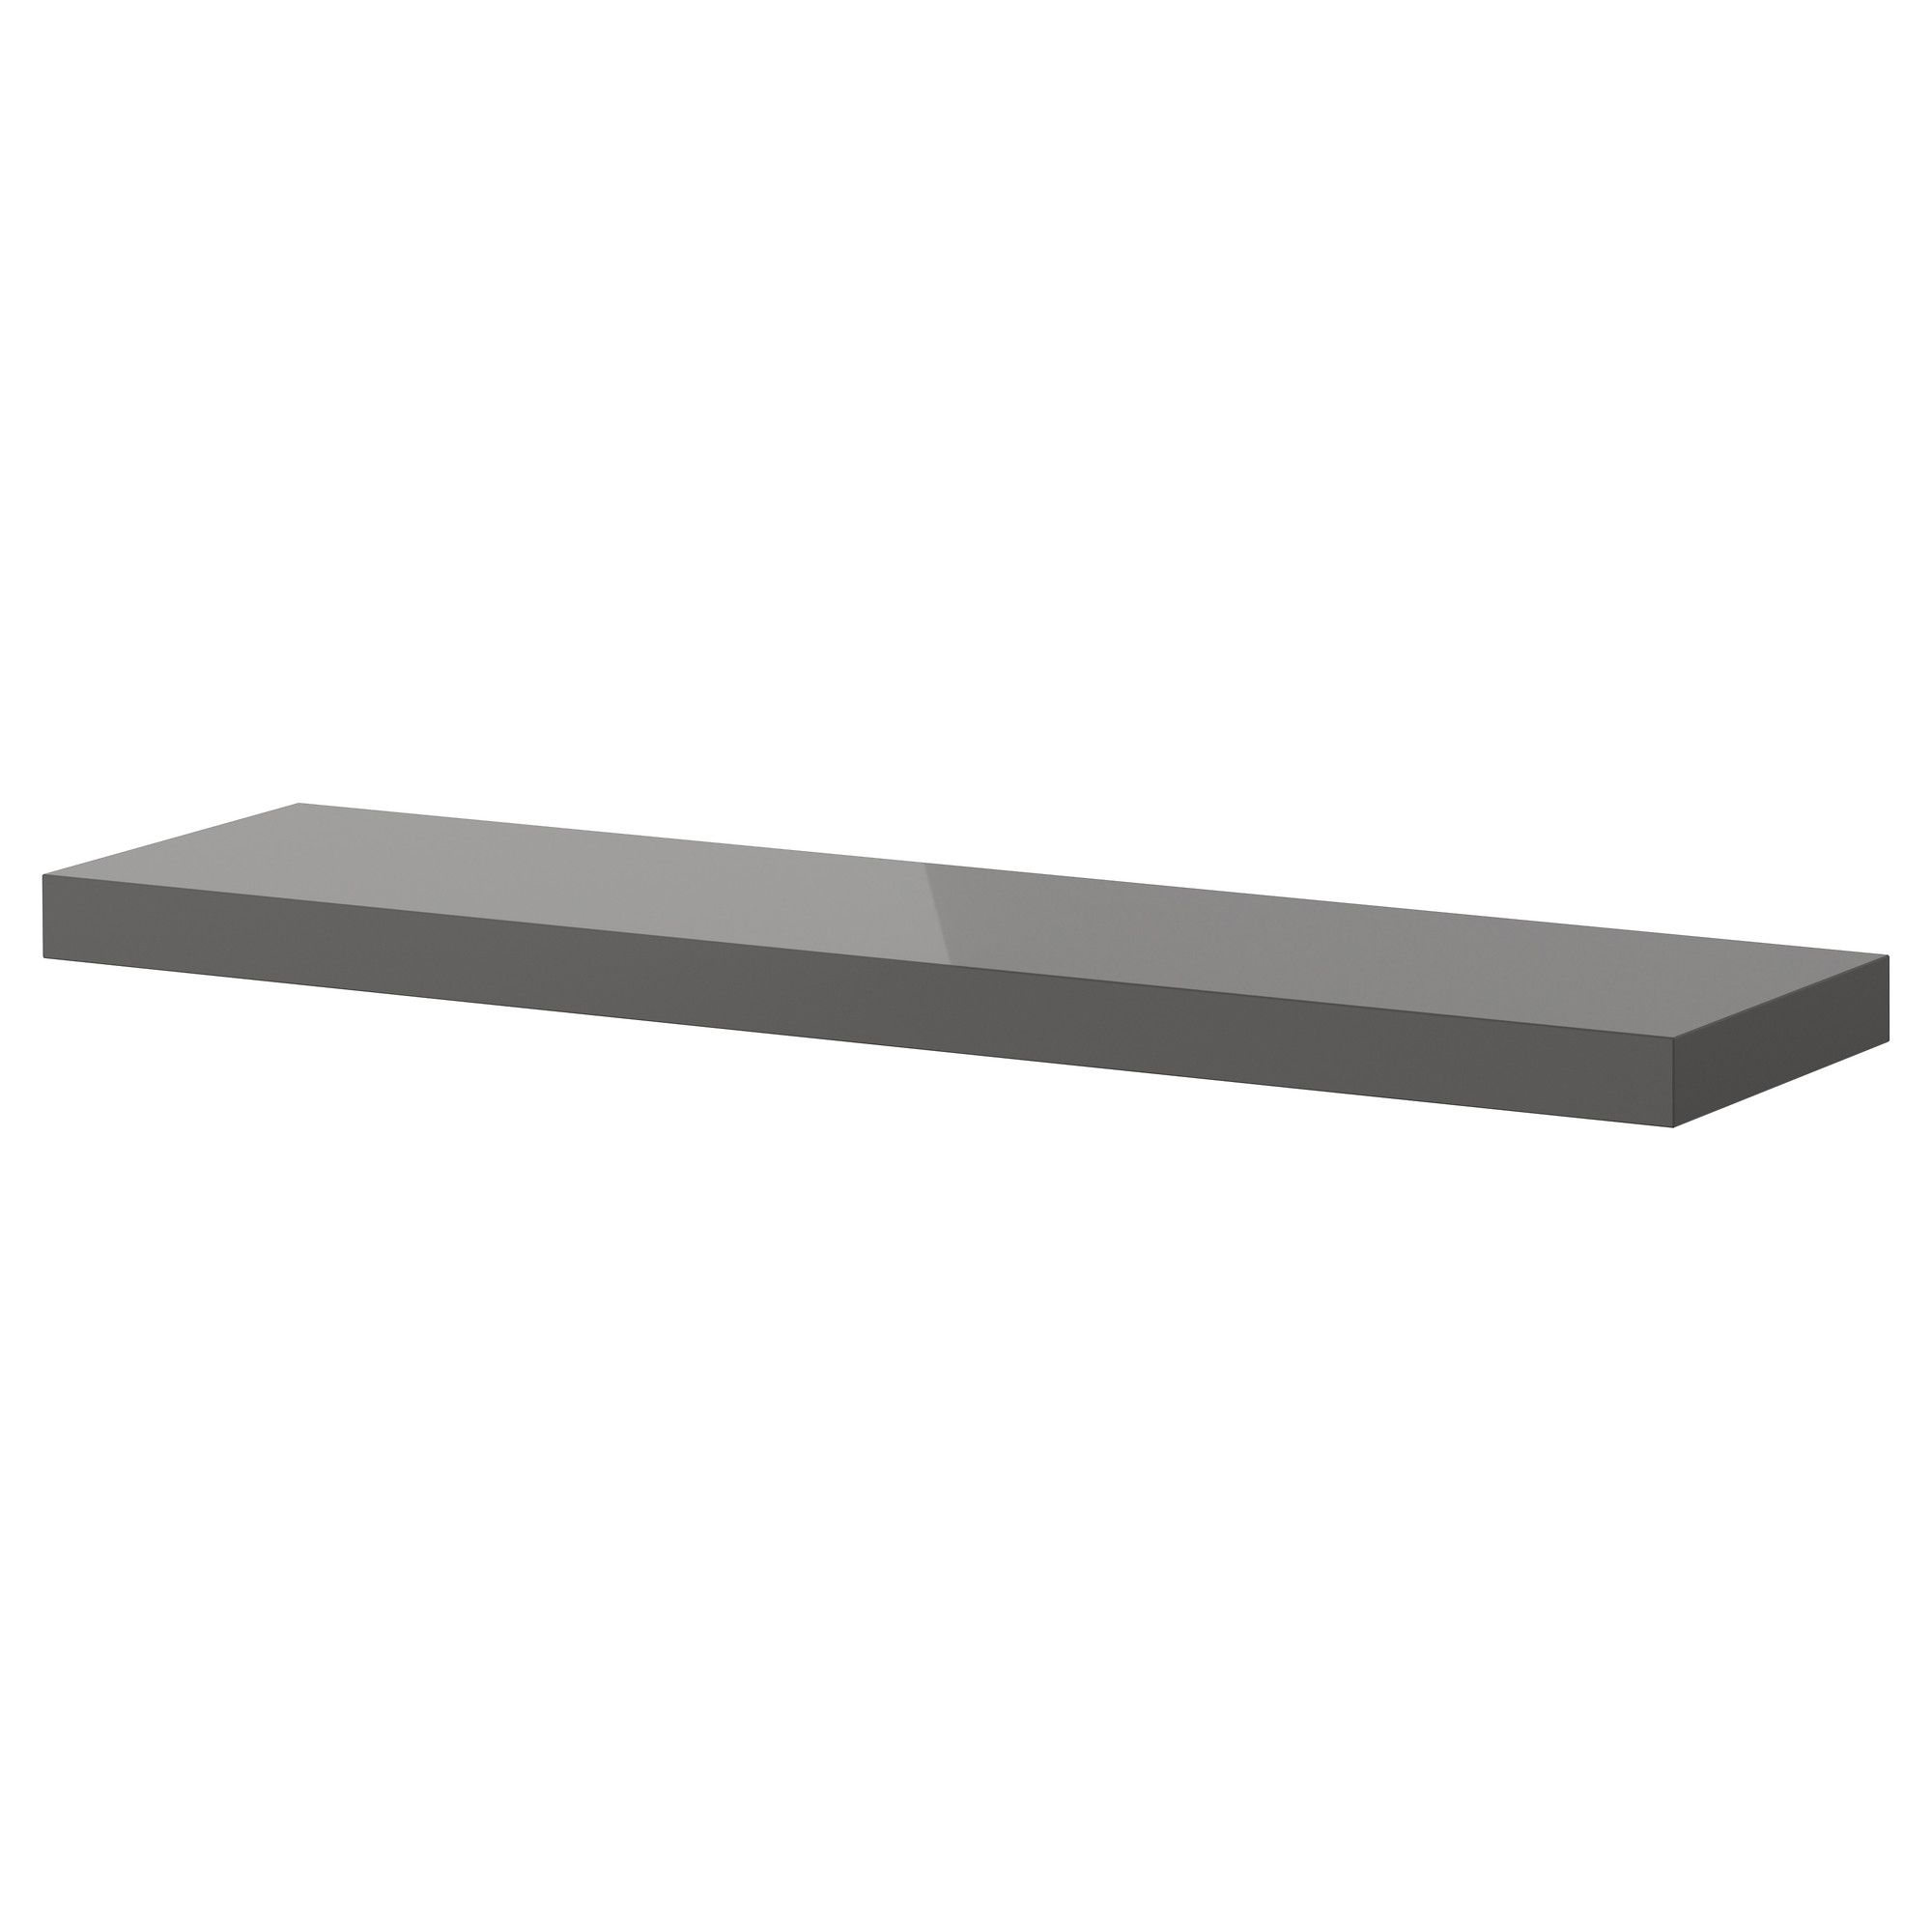 Phenomenal Lack Wall Shelf High Gloss Gray Ikea Home In 2019 Interior Design Ideas Gentotryabchikinfo